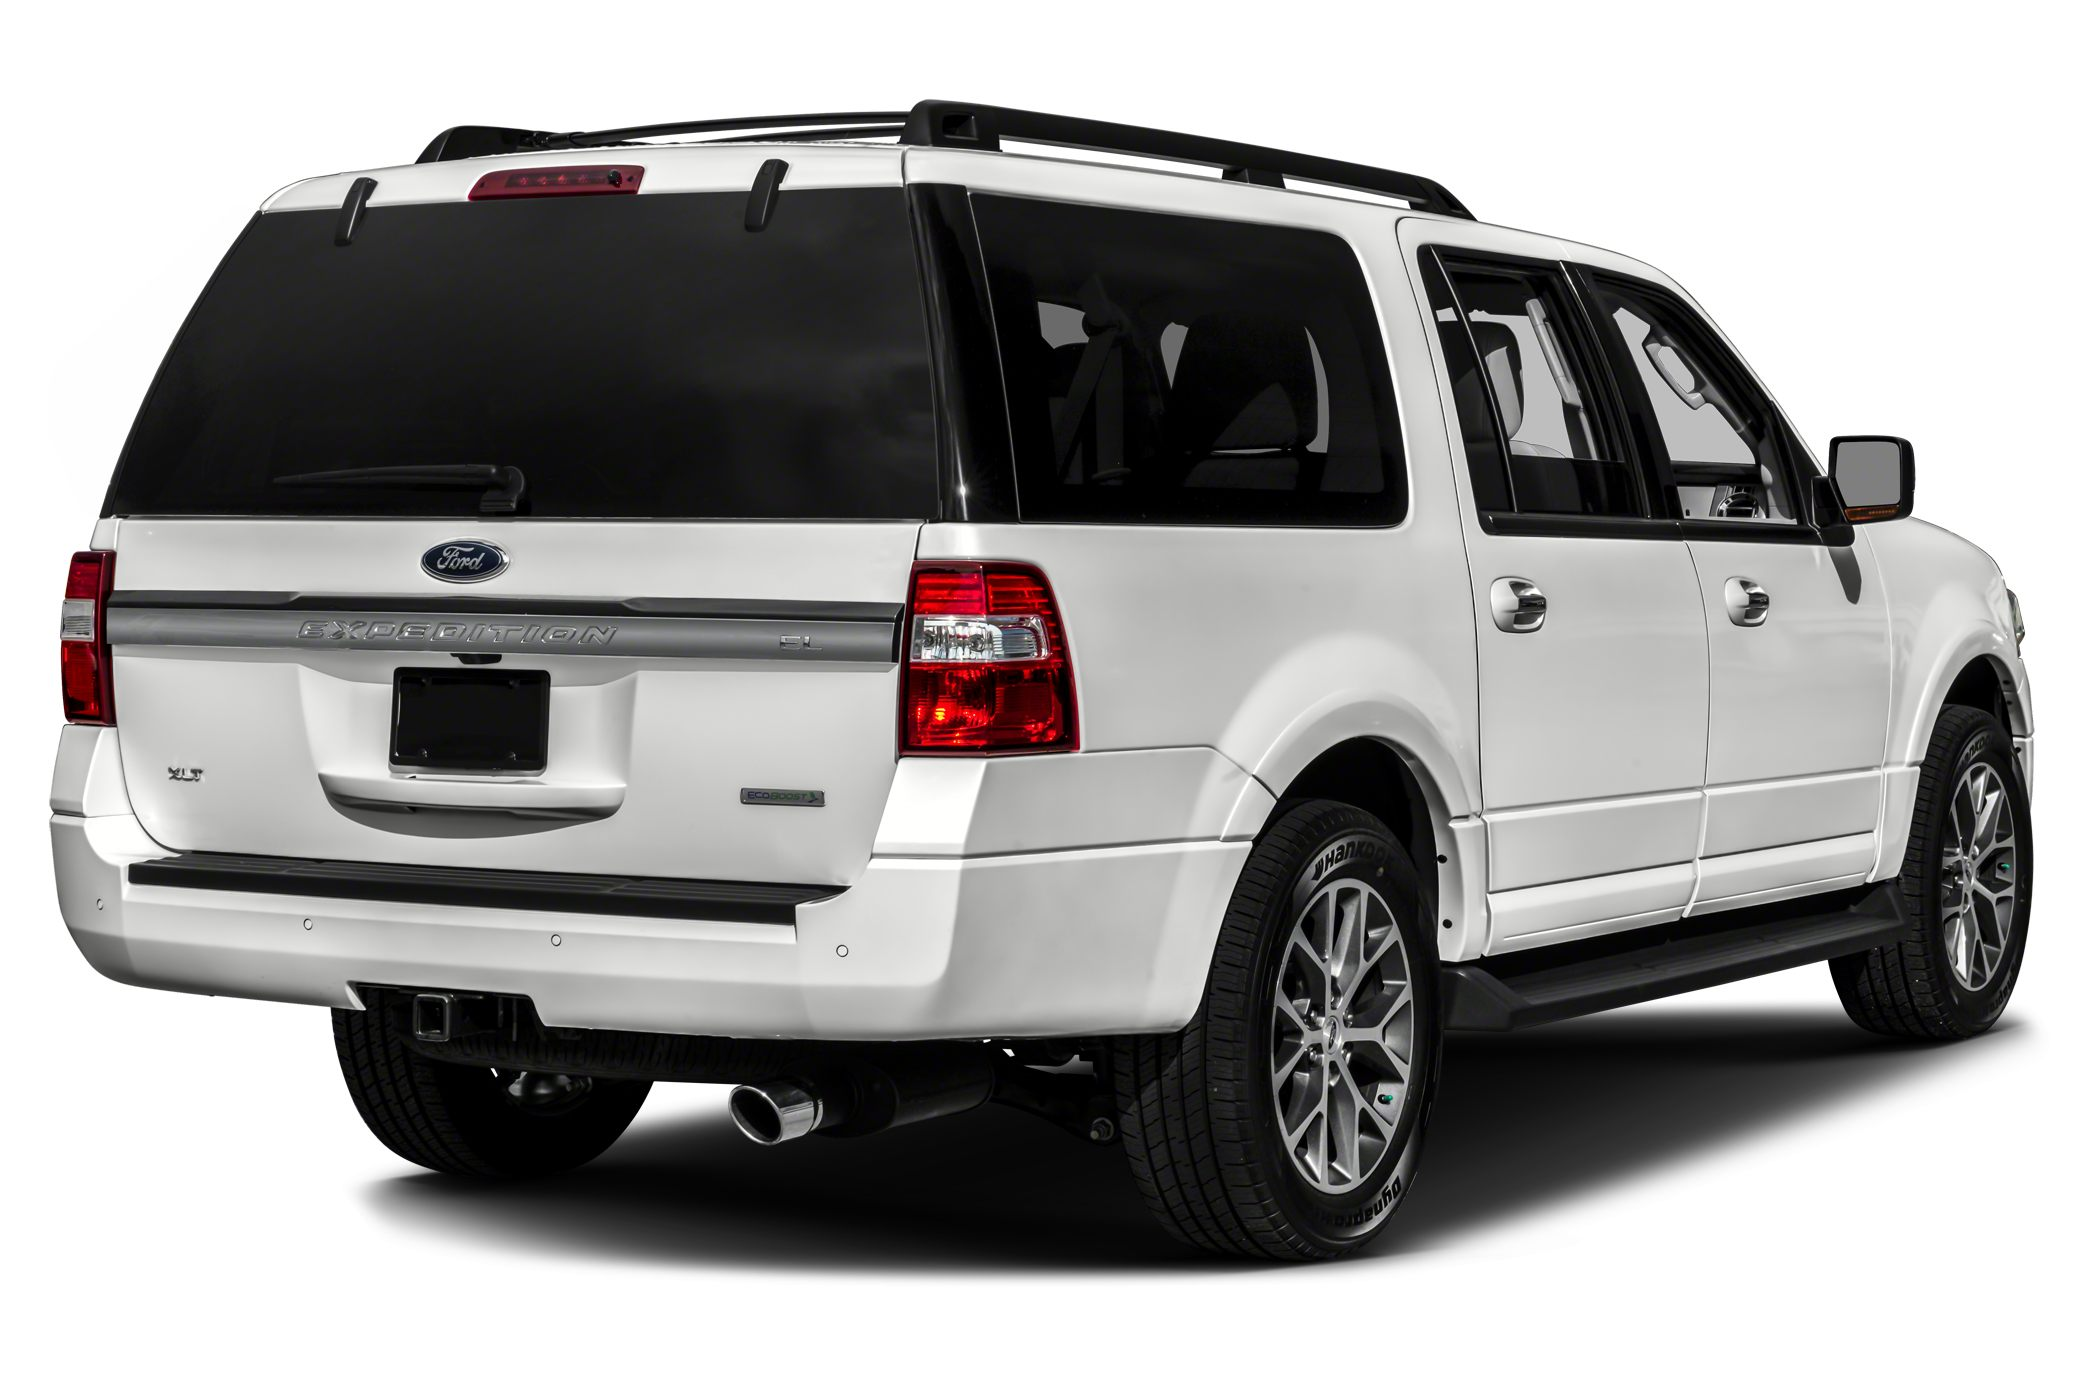 2016 Ford Expedition EL XLT 4WD CARFAX One-Owner White 2016 Ford Expedition EL 4WD EcoBoost 35L